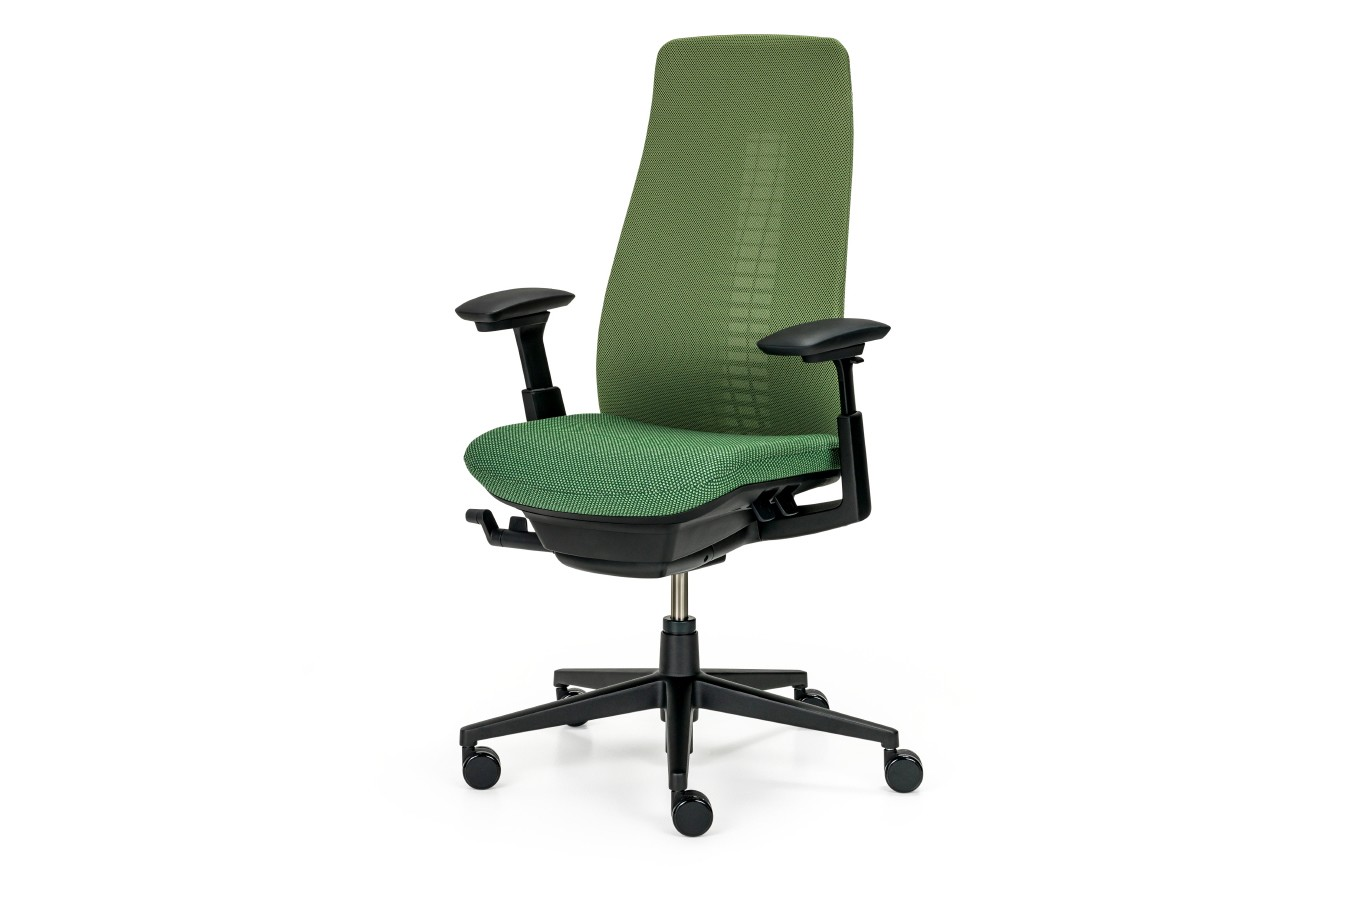 Fern Task Chair with Armrests Standard Armrests, F0, Black plastic and structure, soft castor